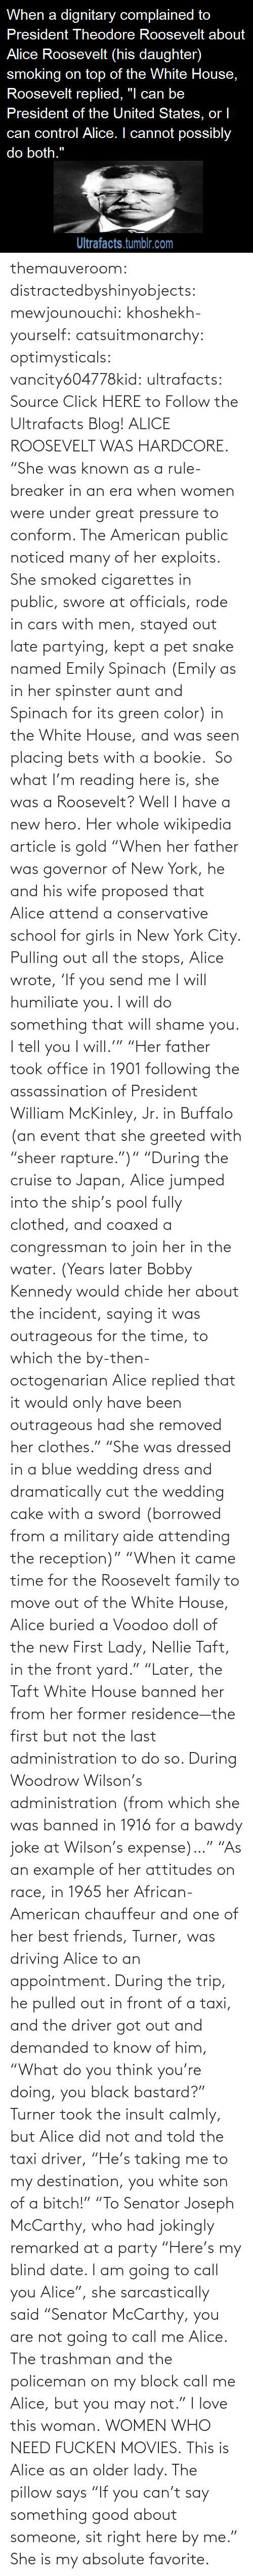 "pet: themauveroom: distractedbyshinyobjects:  mewjounouchi:  khoshekh-yourself:  catsuitmonarchy:  optimysticals:  vancity604778kid:  ultrafacts:     Source Click HERE to Follow the Ultrafacts Blog!     ALICE ROOSEVELT WAS HARDCORE. ""She was known as a rule-breaker in an era when women were under great pressure to conform. The American public noticed many of her exploits. She smoked cigarettes in public, swore at officials, rode in cars with men, stayed out late partying, kept a pet snake named Emily Spinach (Emily as in her spinster aunt and Spinach for its green color) in the White House, and was seen placing bets with a bookie.    So what I'm reading here is, she was a Roosevelt?  Well I have a new hero.  Her whole wikipedia article is gold ""When her father was governor of New York, he and his wife proposed that Alice attend a conservative school for girls in New York City. Pulling out all the stops, Alice wrote, 'If you send me I will humiliate you. I will do something that will shame you. I tell you I will.'"" ""Her father took office in 1901 following the assassination of President William McKinley, Jr. in Buffalo (an event that she greeted with ""sheer rapture."")"" ""During the cruise to Japan, Alice jumped into the ship's pool fully clothed, and coaxed a congressman to join her in the water. (Years later Bobby Kennedy would chide her about the incident, saying it was outrageous for the time, to which the by-then-octogenarian Alice replied that it would only have been outrageous had she removed her clothes."" ""She was dressed in a blue wedding dress and dramatically cut the wedding cake with a sword (borrowed from a military aide attending the reception)"" ""When it came time for the Roosevelt family to move out of the White House, Alice buried a Voodoo doll of the new First Lady, Nellie Taft, in the front yard."" ""Later, the Taft White House banned her from her former residence—the first but not the last administration to do so. During Woodrow Wilson's administration (from which she was banned in 1916 for a bawdy joke at Wilson's expense)…"" ""As an example of her attitudes on race, in 1965 her African-American chauffeur and one of her best friends, Turner, was driving Alice to an appointment. During the trip, he pulled out in front of a taxi, and the driver got out and demanded to know of him, ""What do you think you're doing, you black bastard?"" Turner took the insult calmly, but Alice did not and told the taxi driver, ""He's taking me to my destination, you white son of a bitch!"" ""To Senator Joseph McCarthy, who had jokingly remarked at a party ""Here's my blind date. I am going to call you Alice"", she sarcastically said ""Senator McCarthy, you are not going to call me Alice. The trashman and the policeman on my block call me Alice, but you may not.""  I love this woman.  WOMEN WHO NEED FUCKEN MOVIES.   This is Alice as an older lady. The pillow says ""If you can't say something good about someone, sit right here by me.""  She is my absolute favorite."